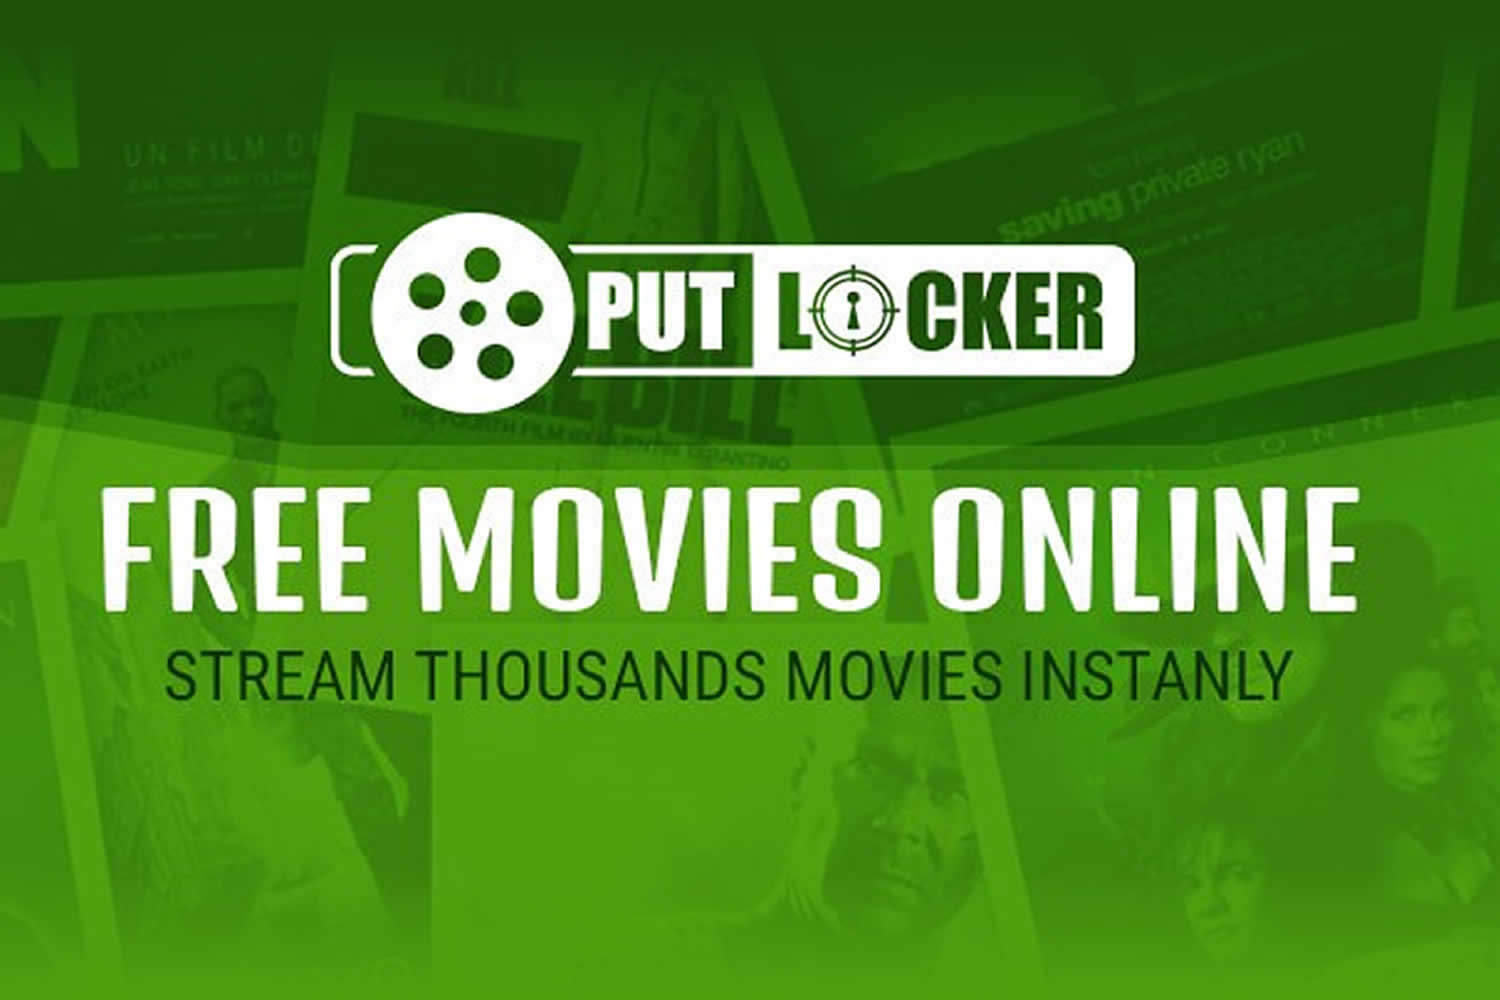 Watch Magic Sticks Putlocker Movies